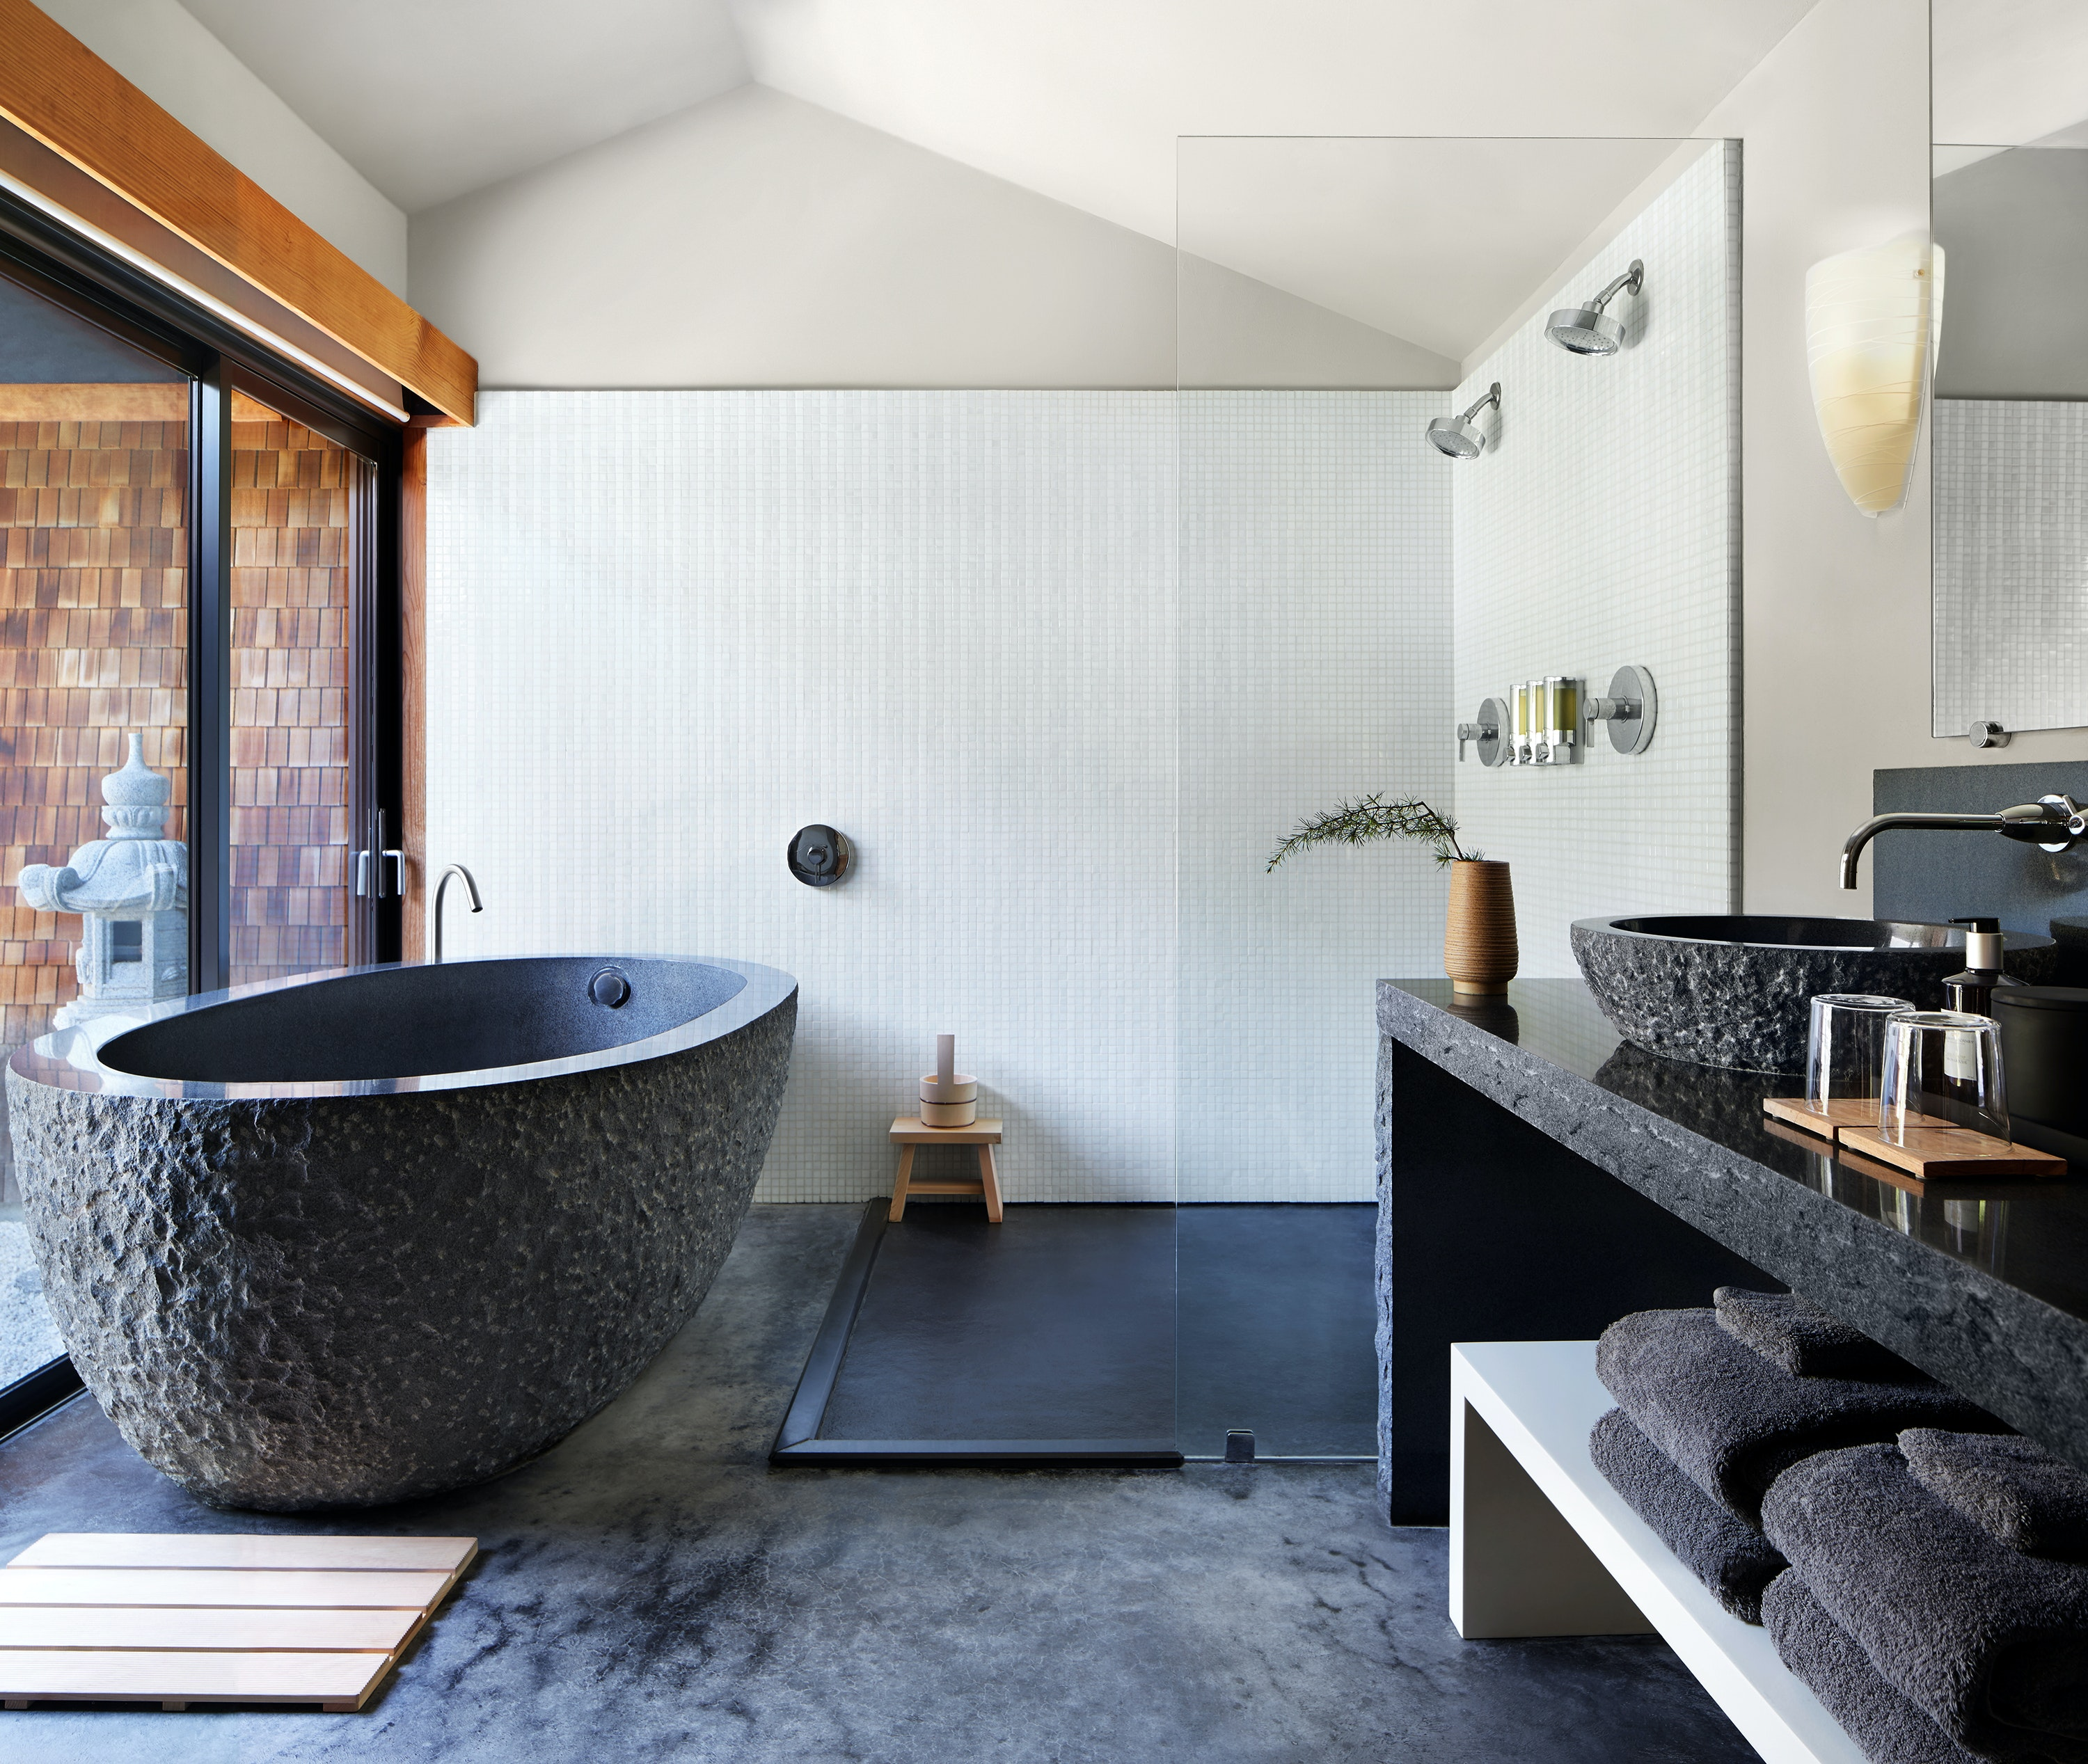 At Gaige House & Ryokan, guests can relax in a creekside suite.